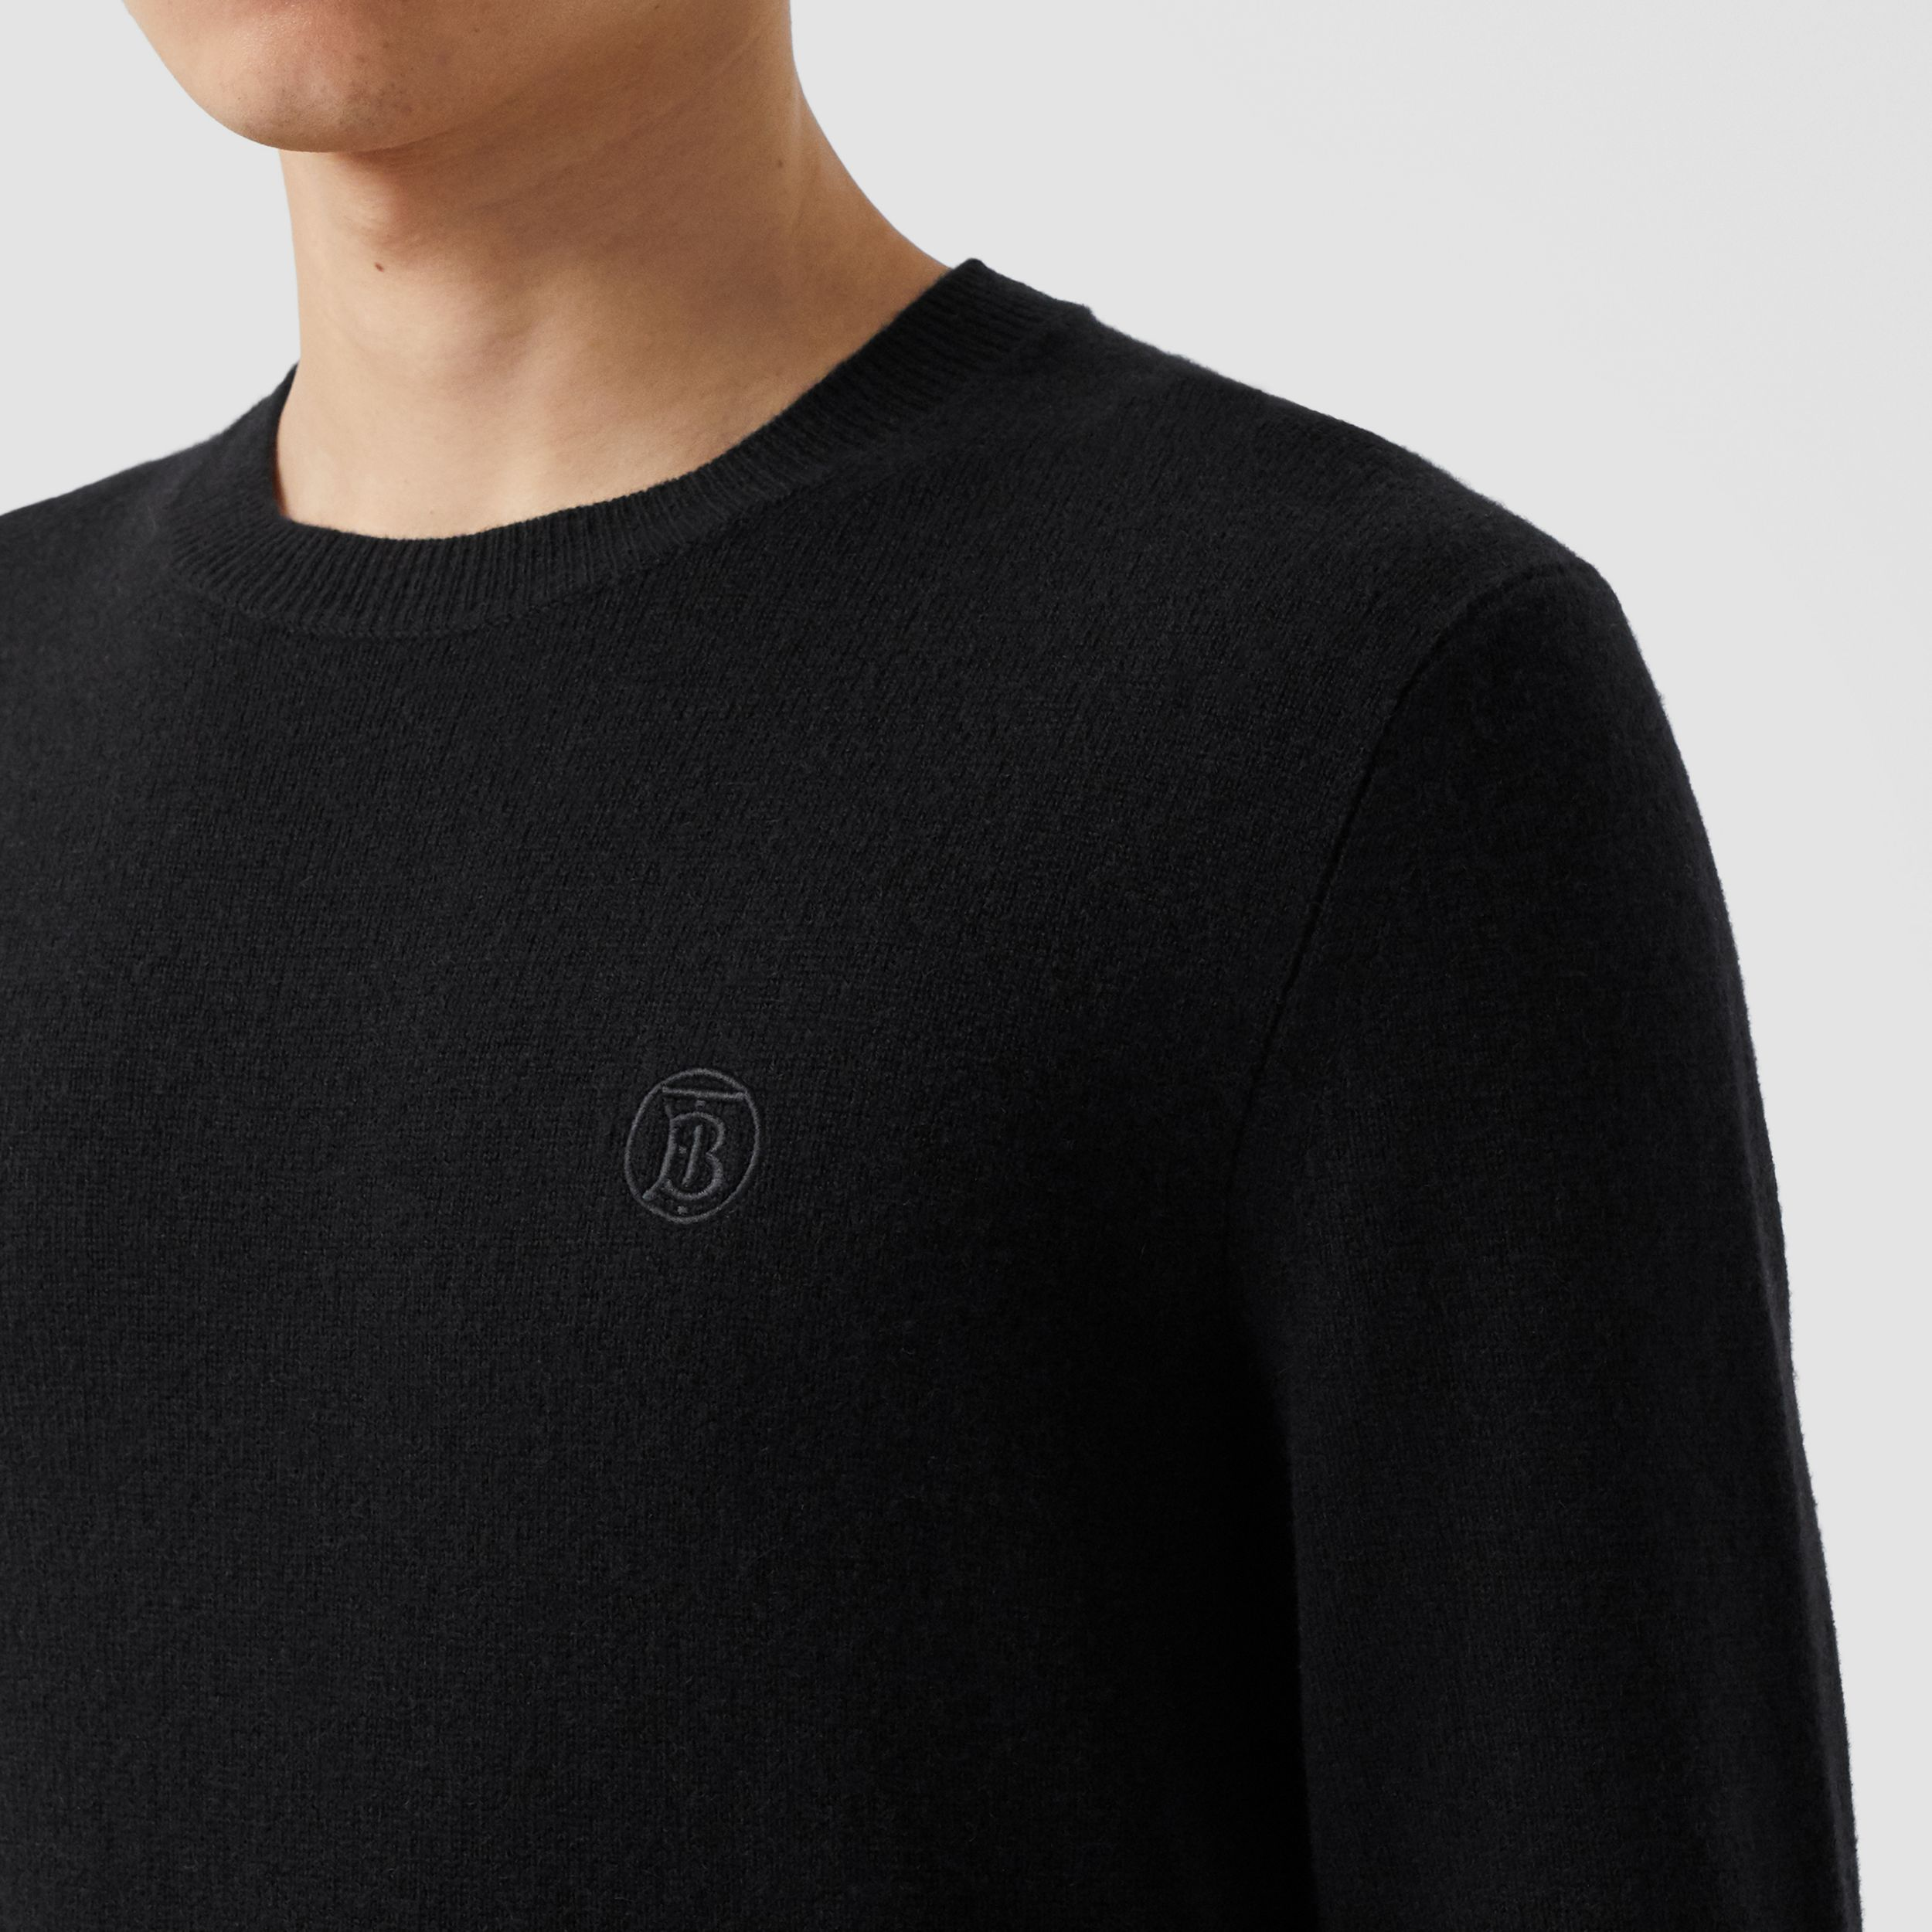 Monogram Motif Cashmere Sweater in Black - Men | Burberry Australia - 2